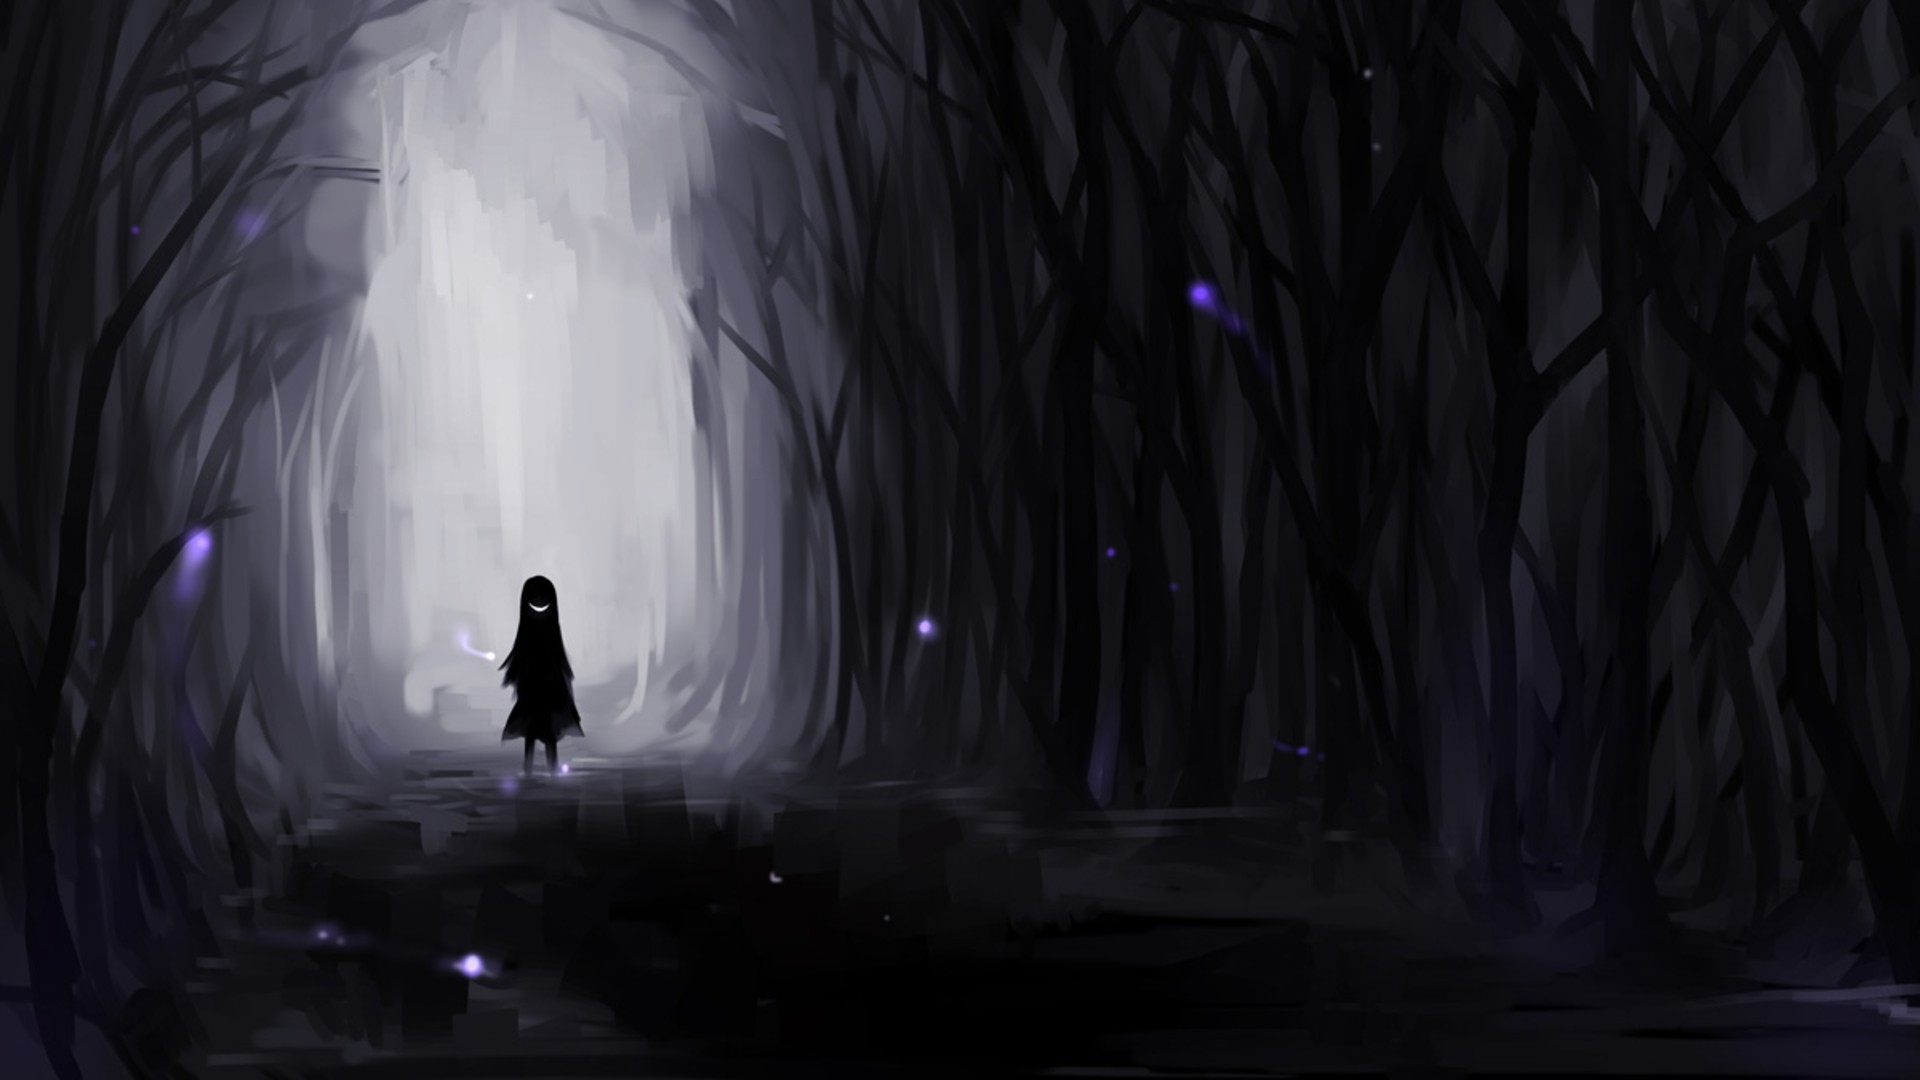 Dark Anime Wallpapers - Wallpaper Cave